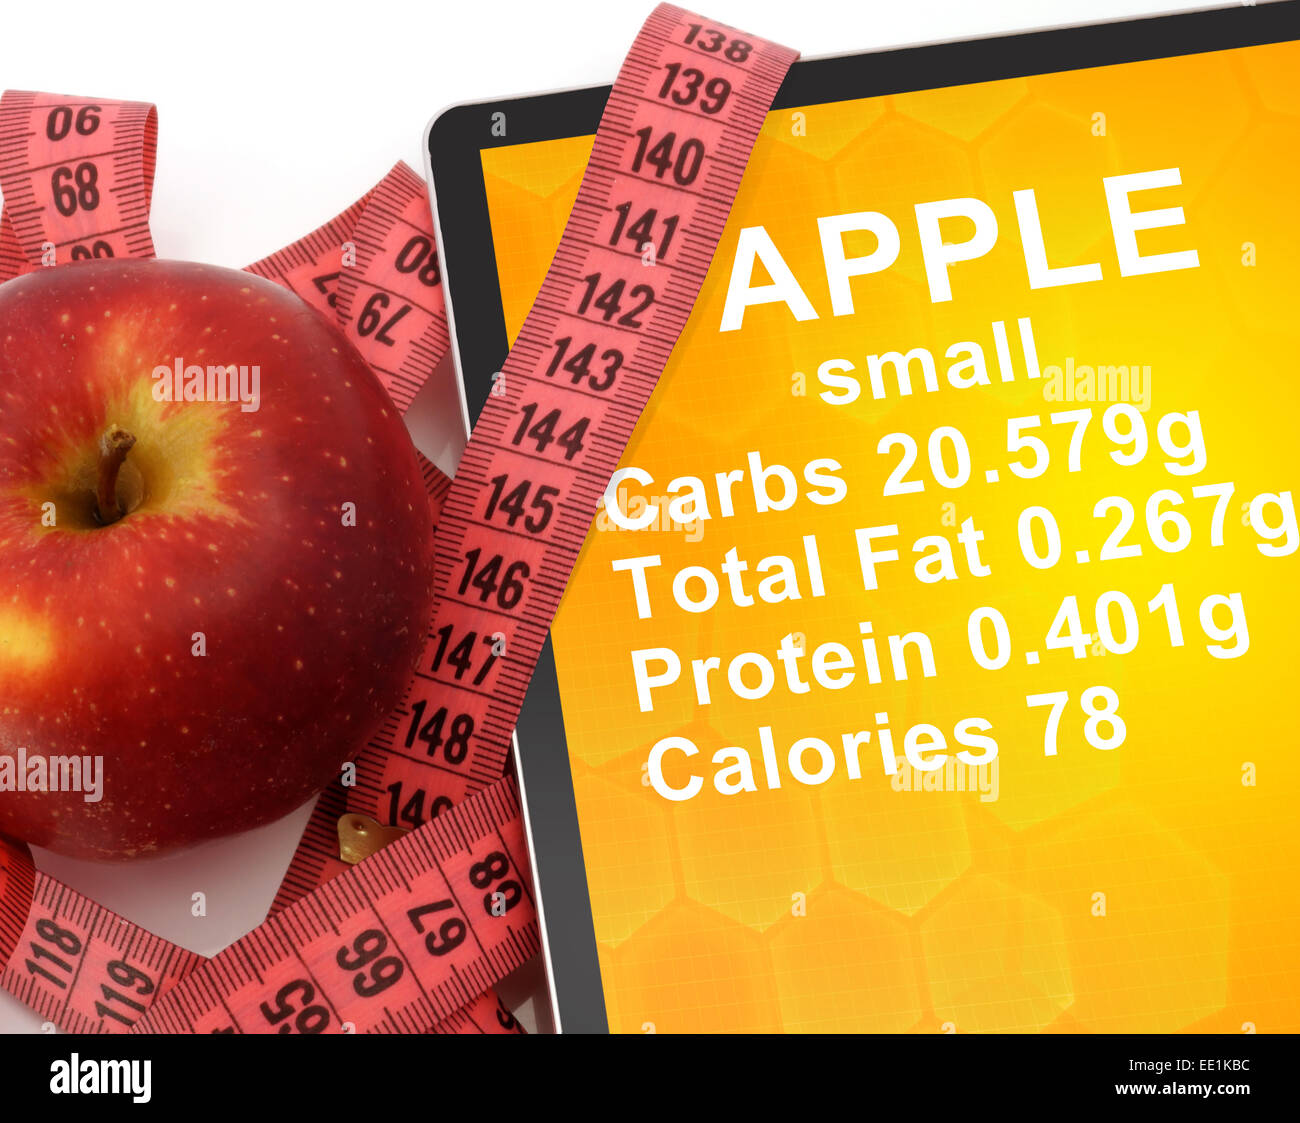 Tablet With Calories In Apple And Measuring Tape On White Stock Photo Alamy